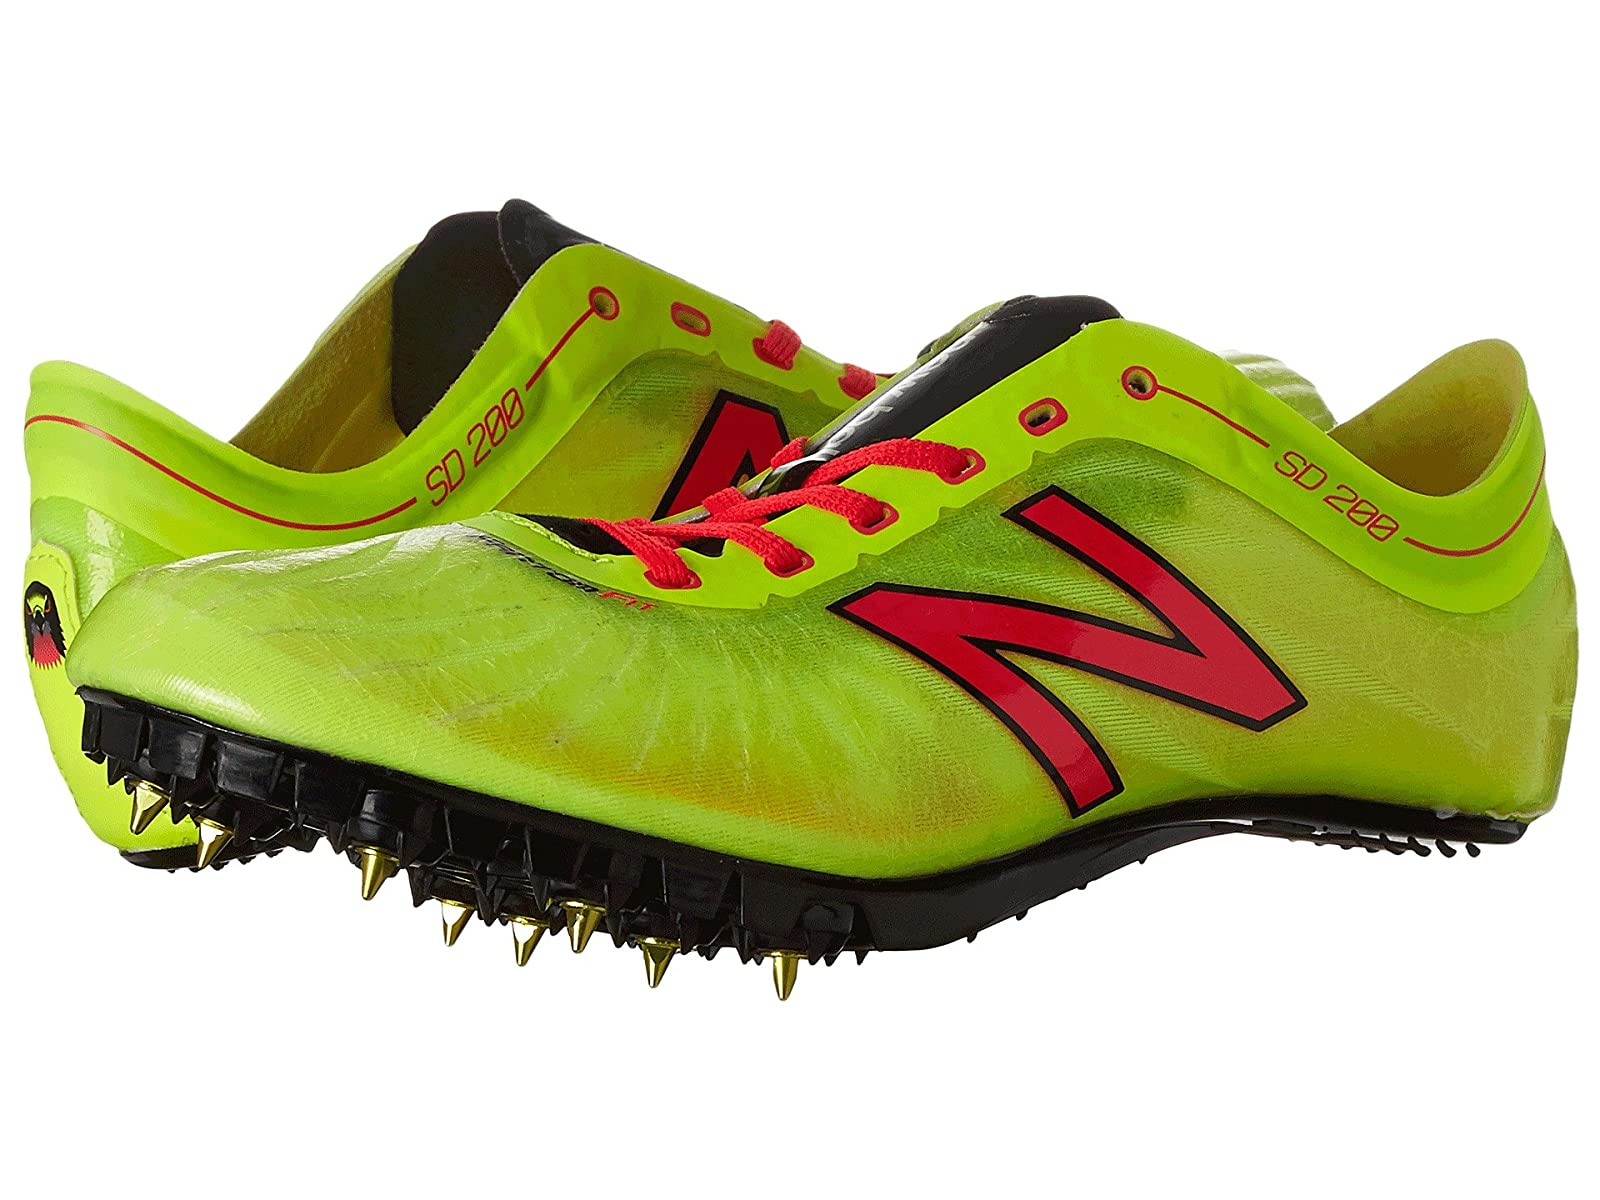 New Balance SD200v1Cheap and distinctive eye-catching shoes